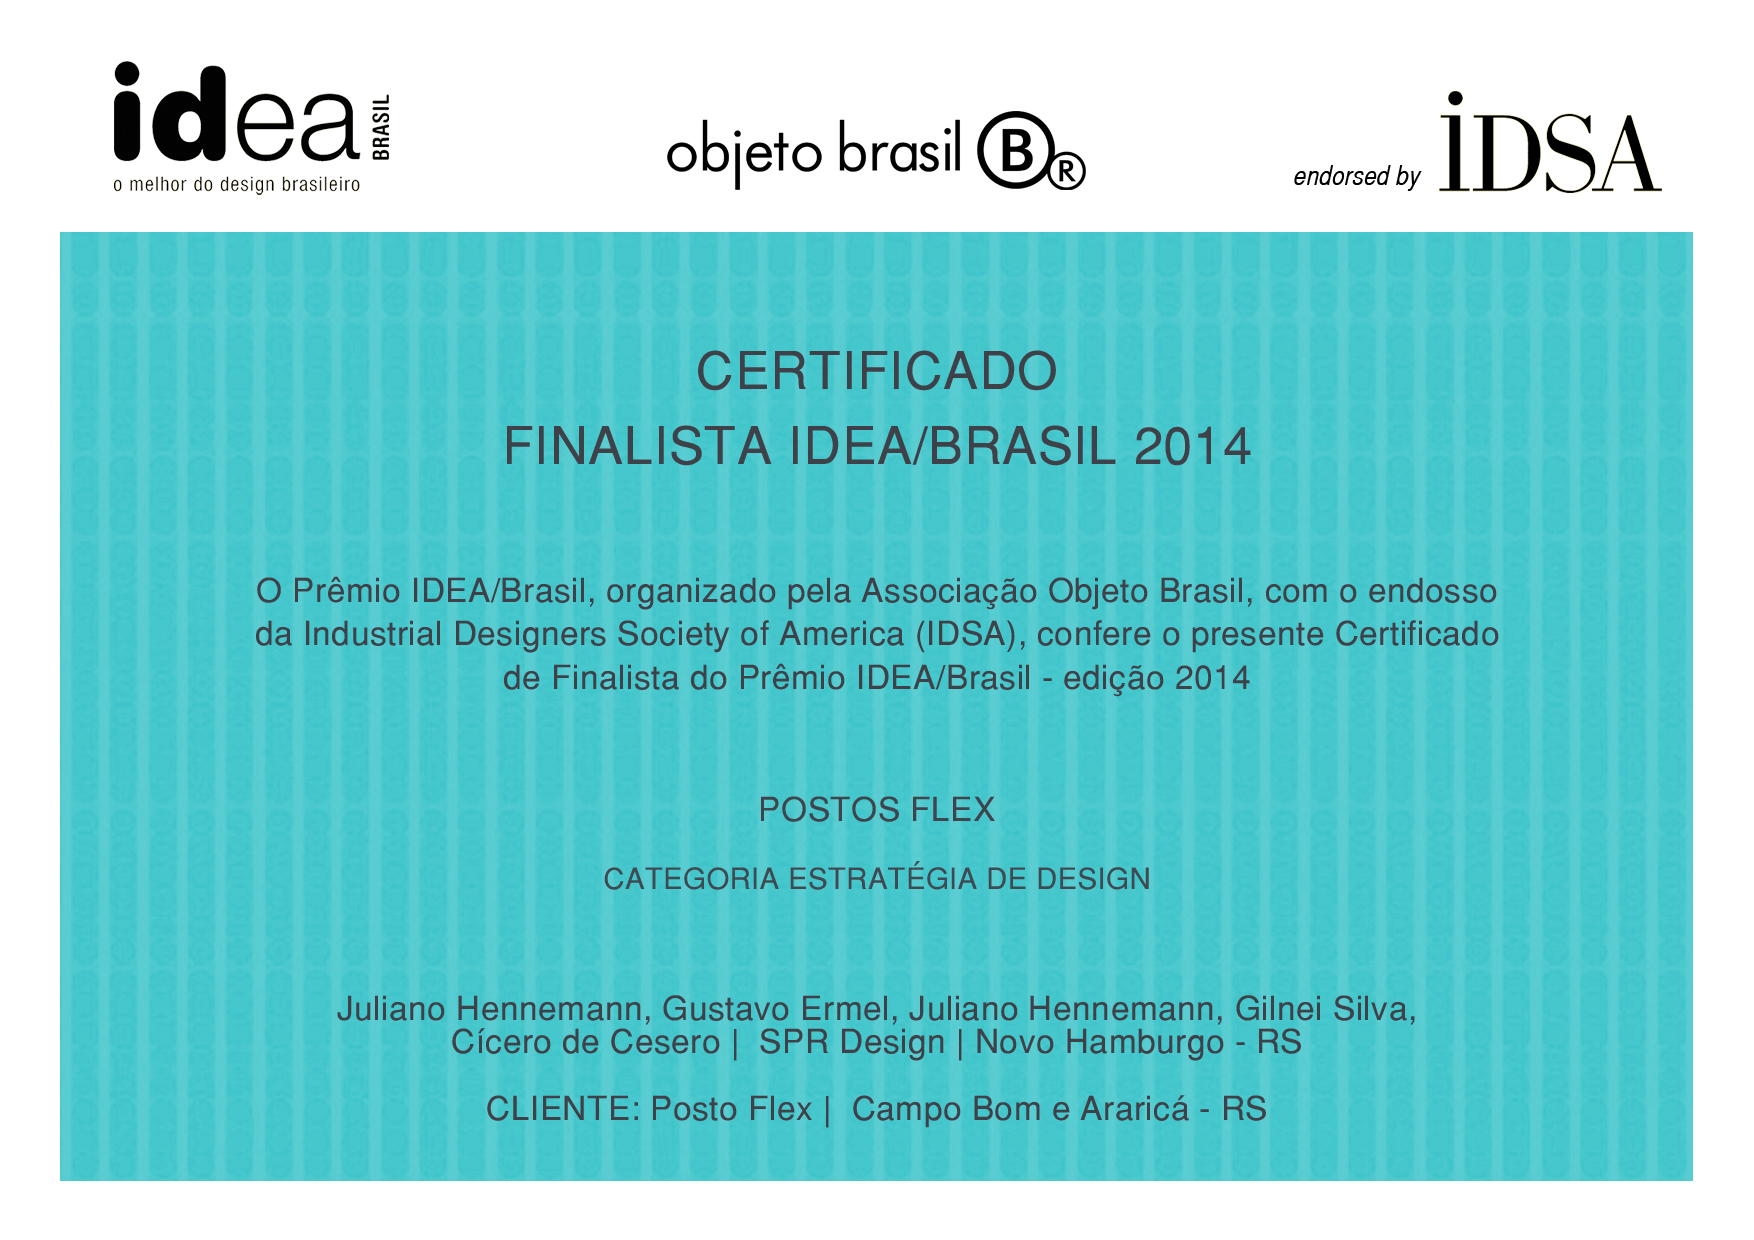 Design Premiado - Postos Flex é finalista do Idea Brasil 2014